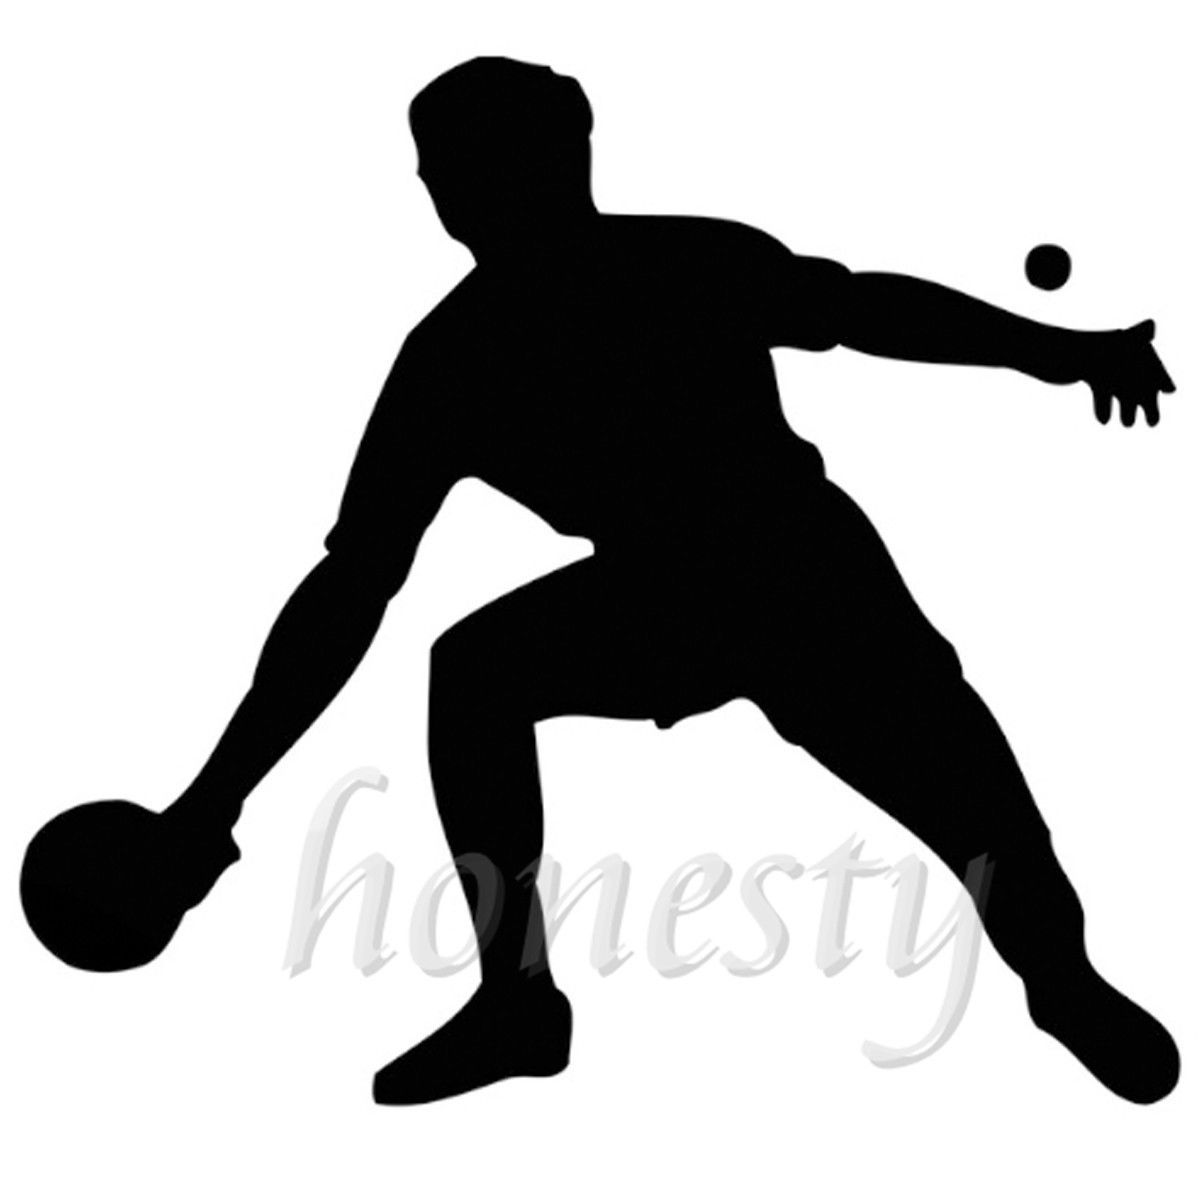 Table Tennis Player Sports Silhouett Wall Home Glass Window Door Car Sticker Auto Truck Laptop Black Vinyl Decal Sticker Gift